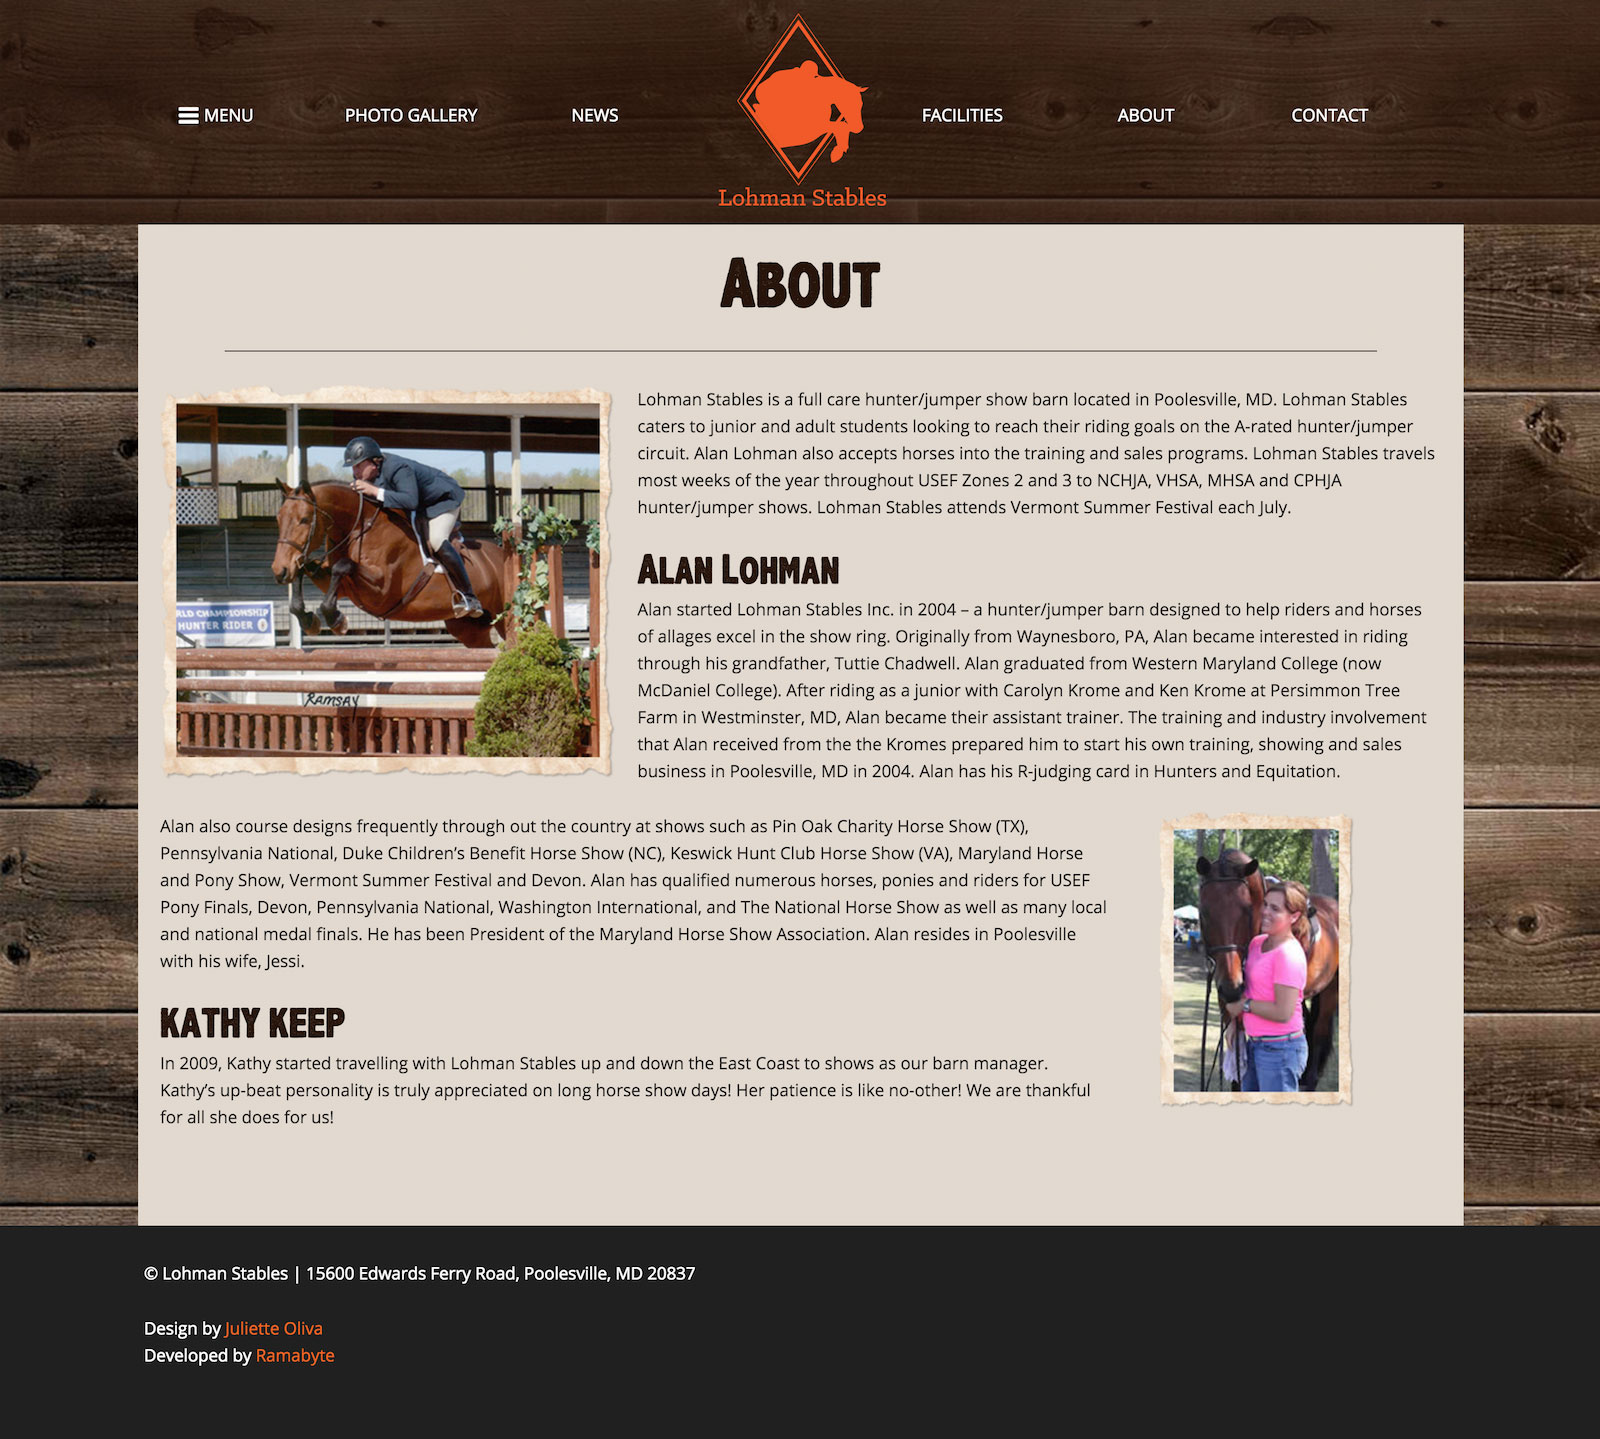 Lohman Stables - About